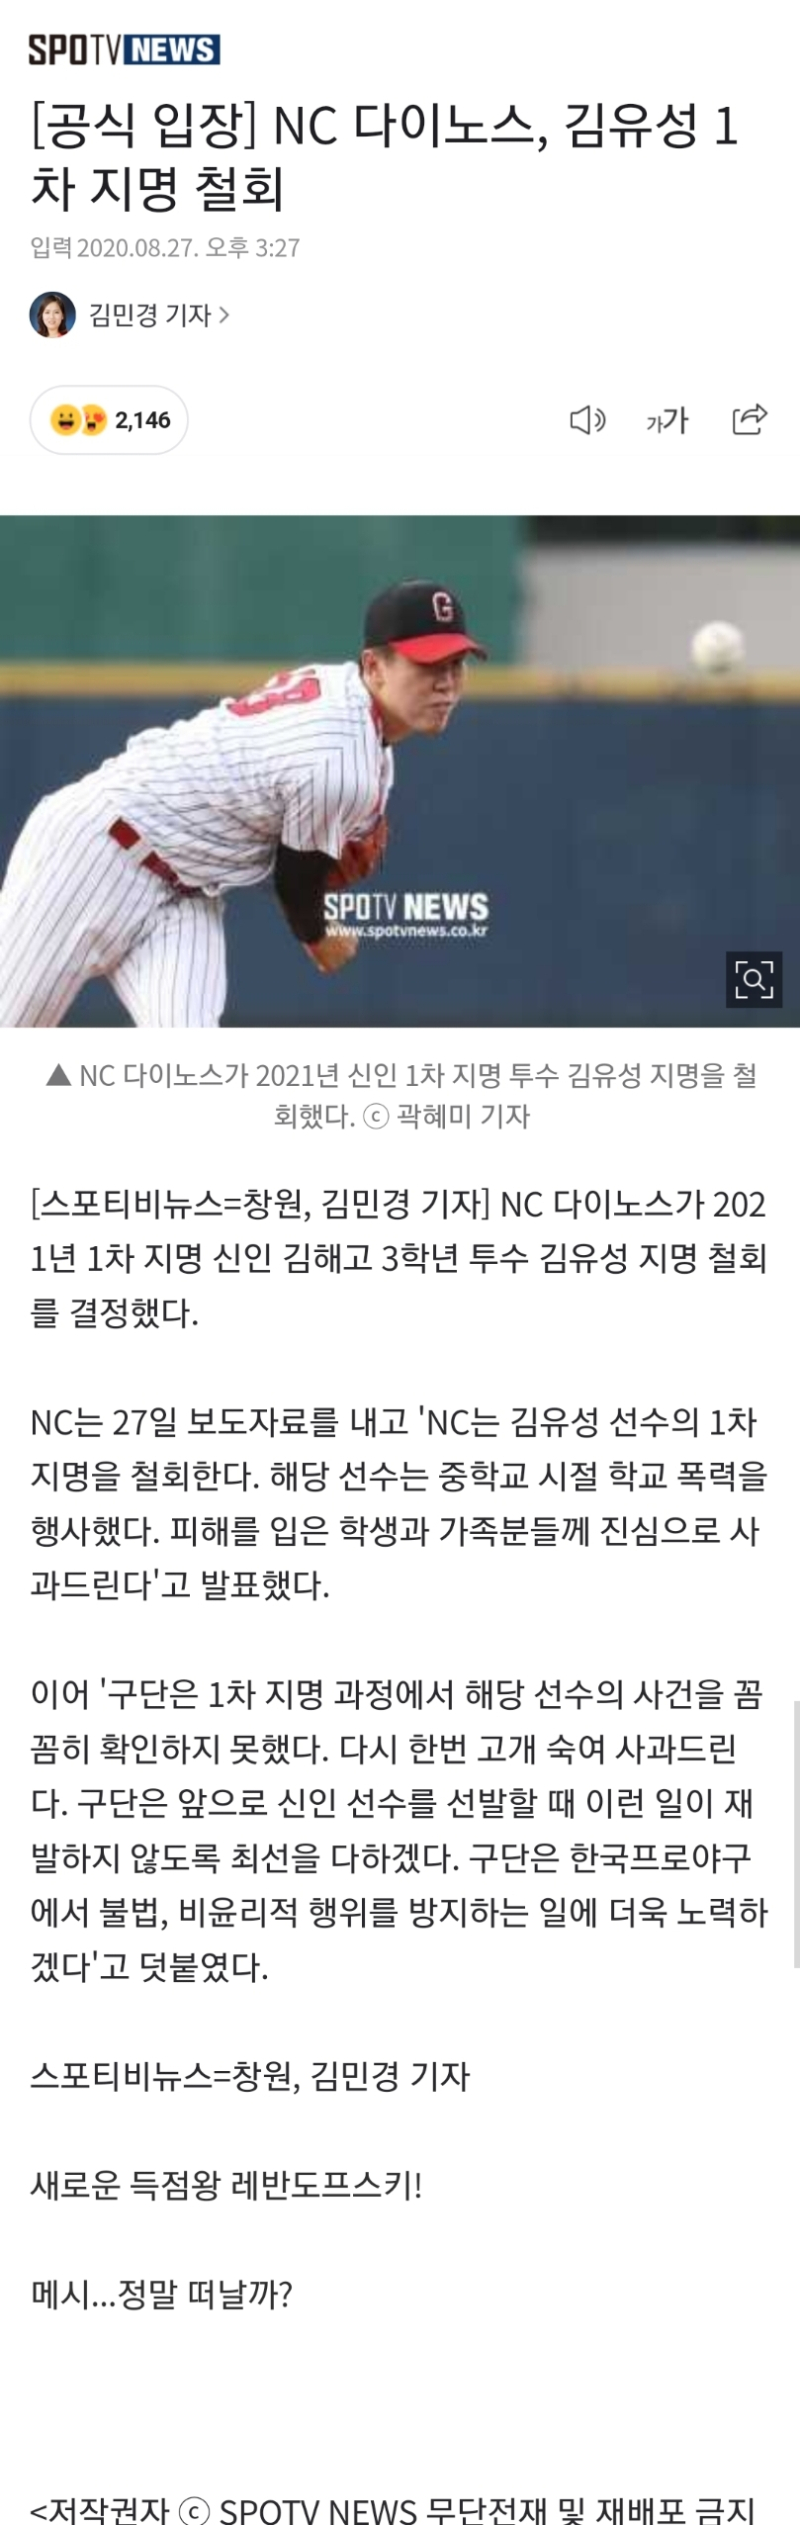 Screenshot_20200827-161208_NAVER.jpg